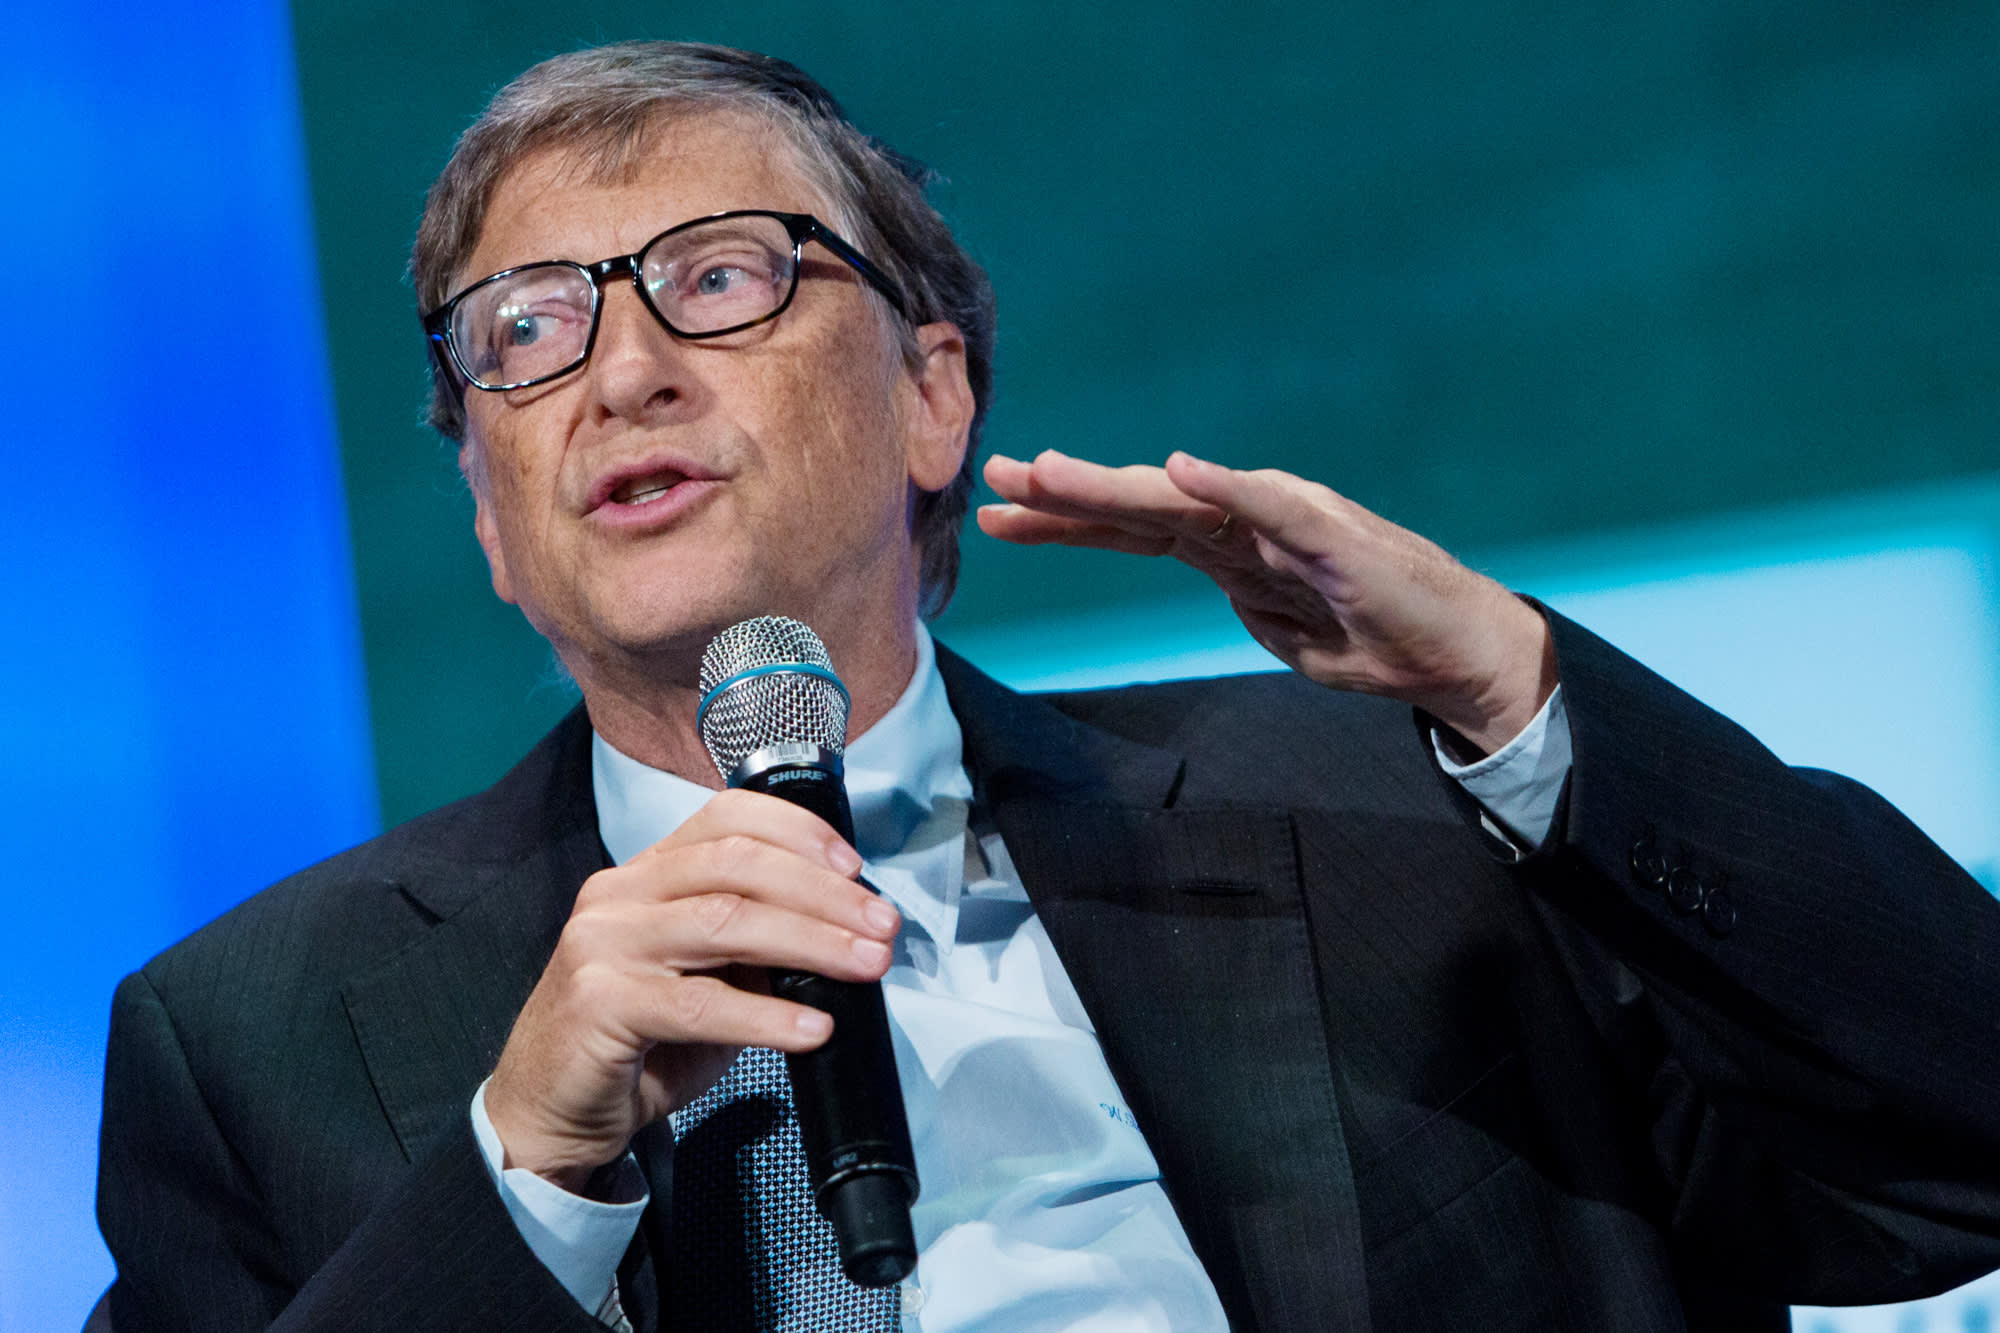 Billionaire who made his first $1 million at Microsoft: 'Bill Gates was an extremely intense person'